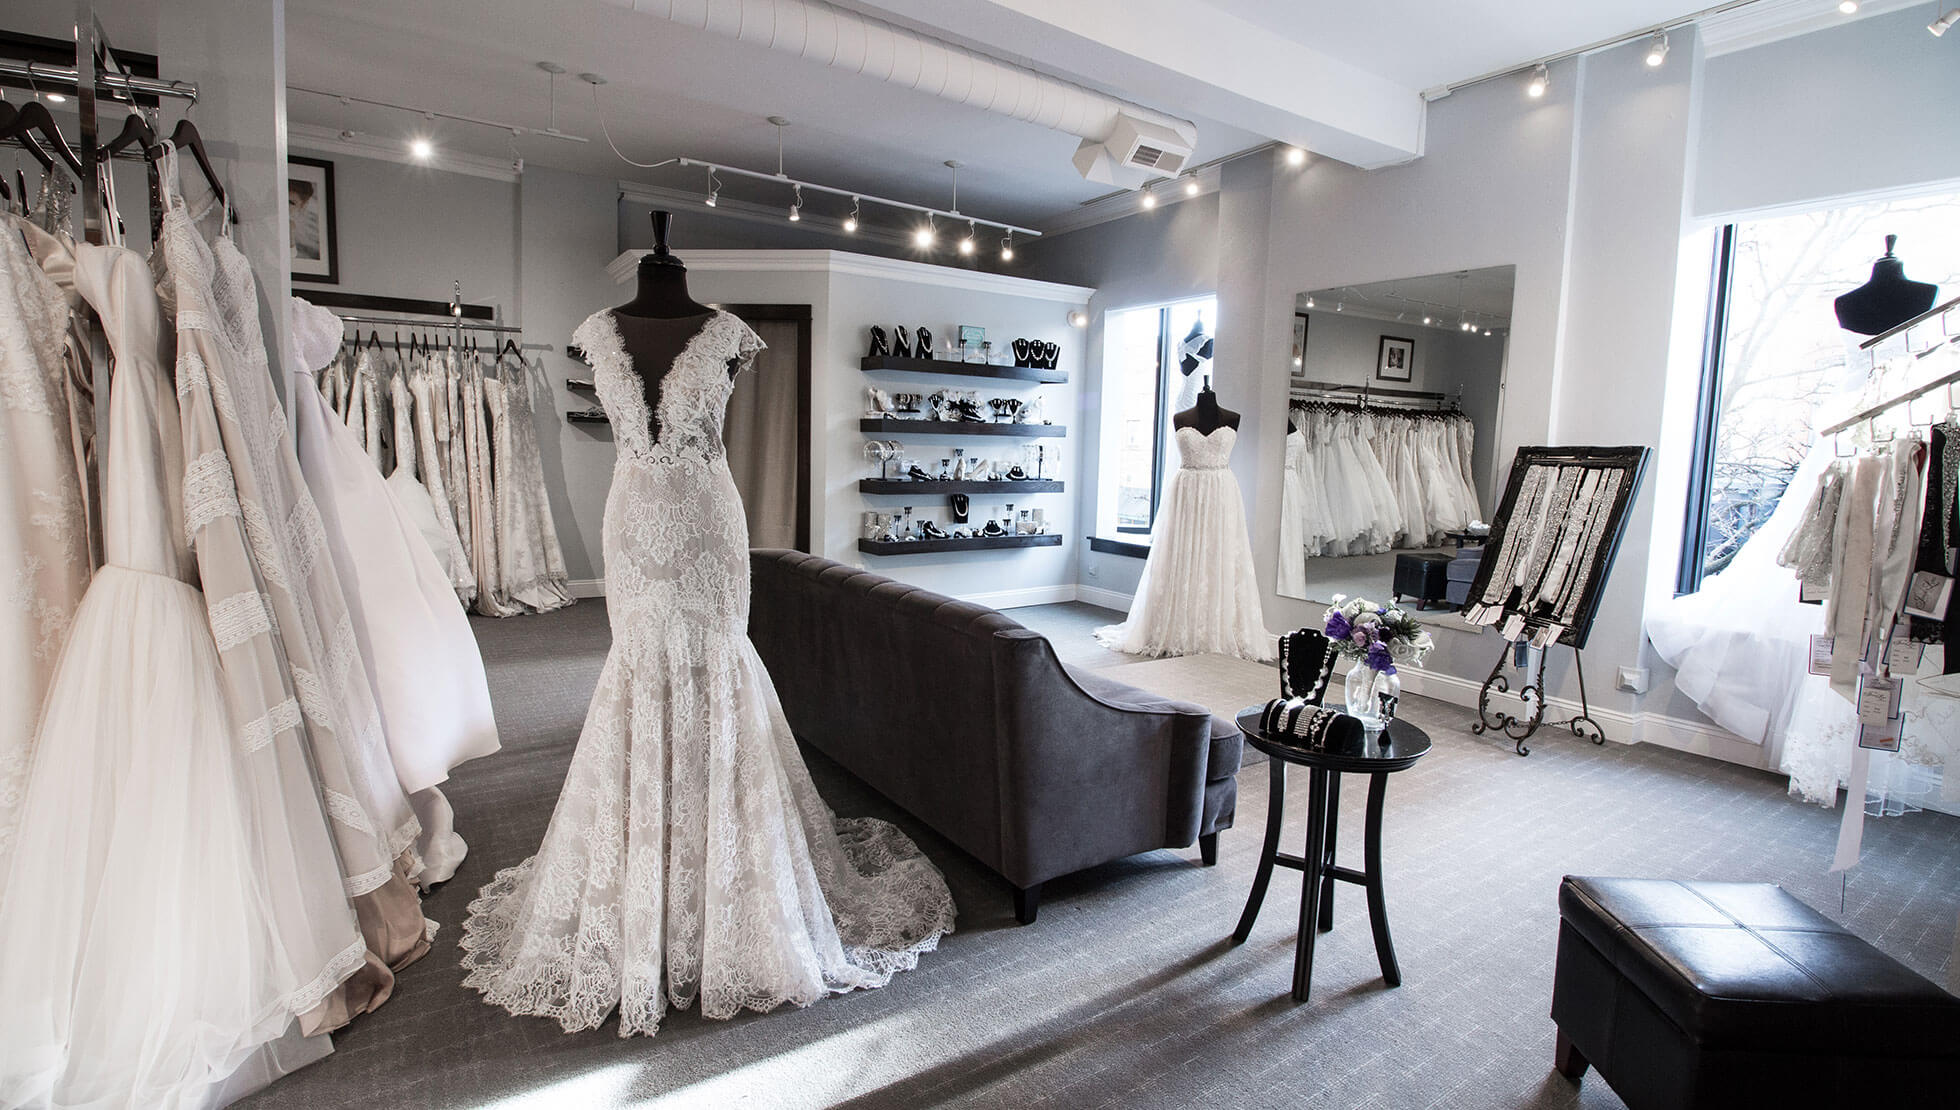 Memories' bridal salons showroom filled with a selection of wedding gowns.